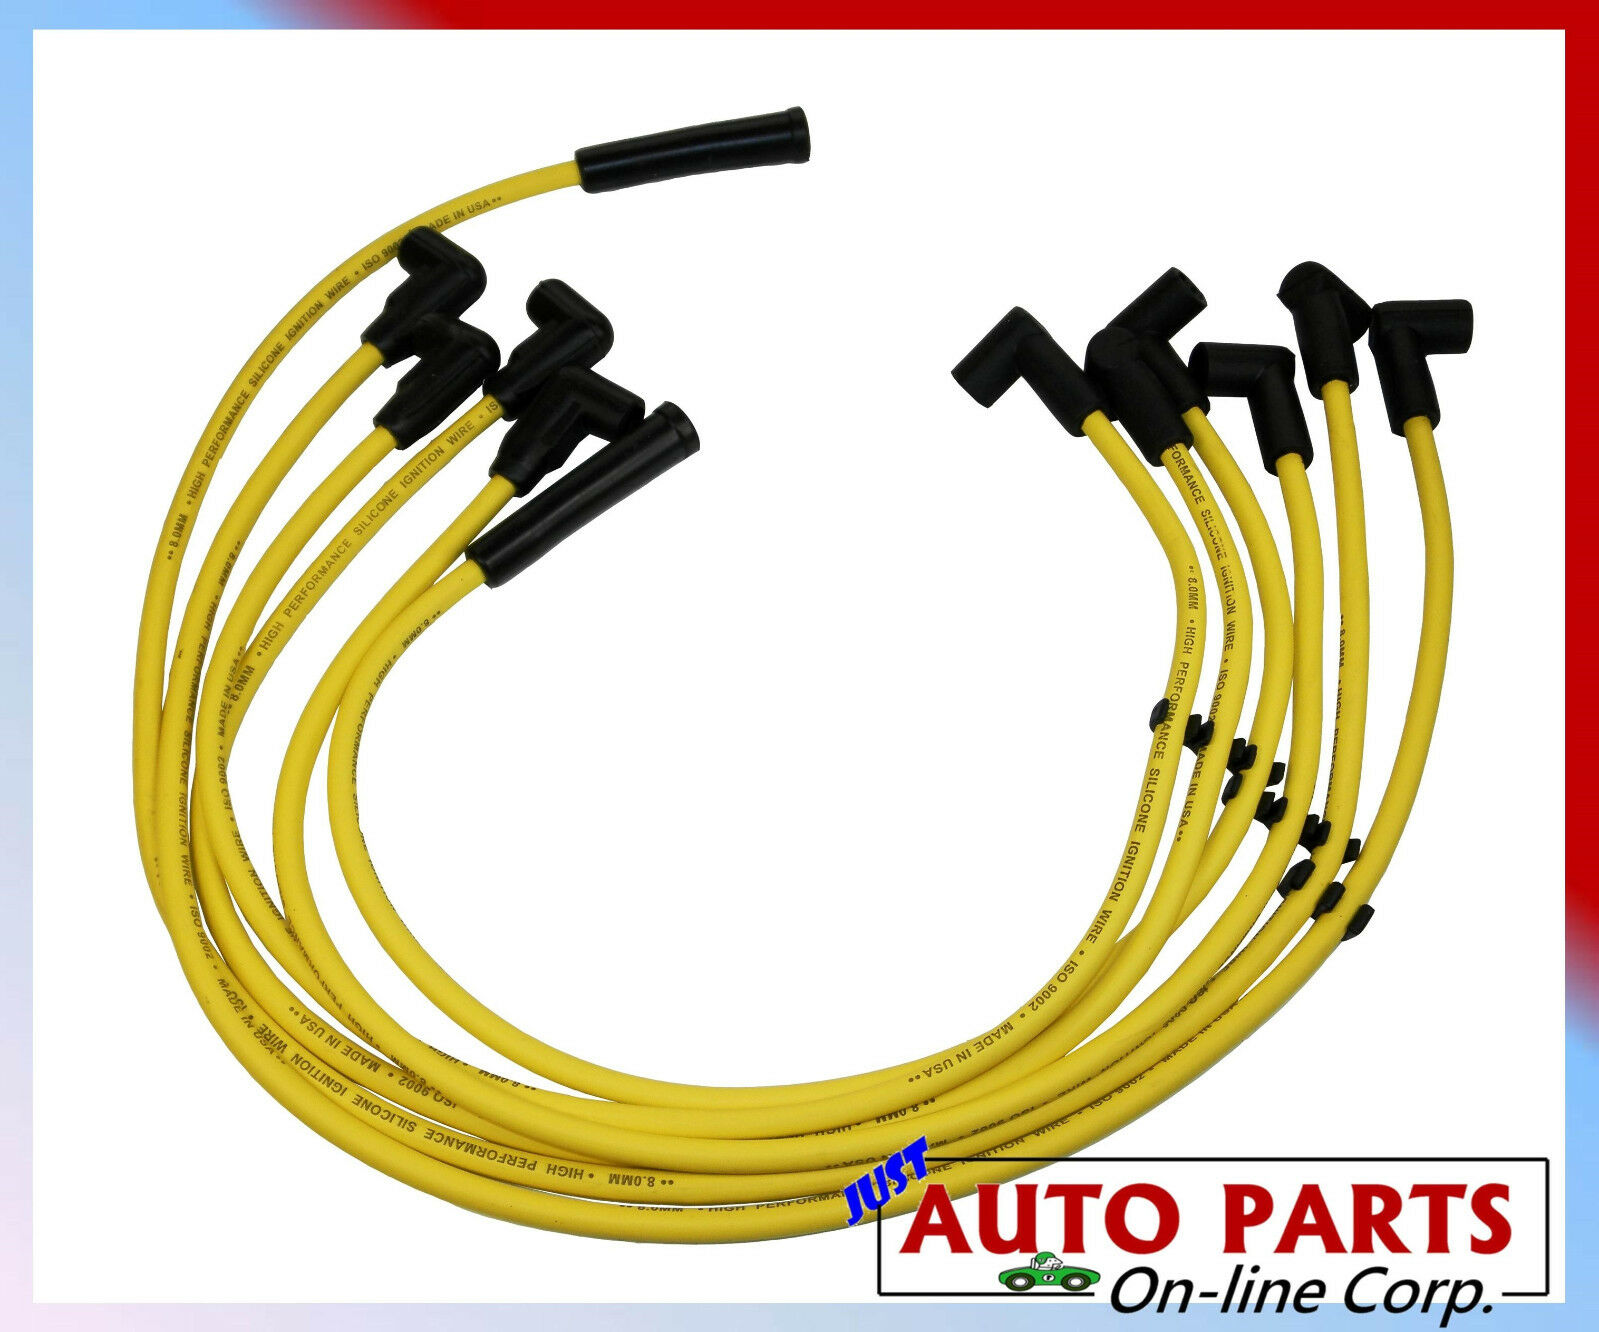 Ignition Spark Plug Wires Chevrolet & Gmc V6 4 3l 92 95 C1500 C2500 2000  Chevy S10 4.3l Ignition Wiring